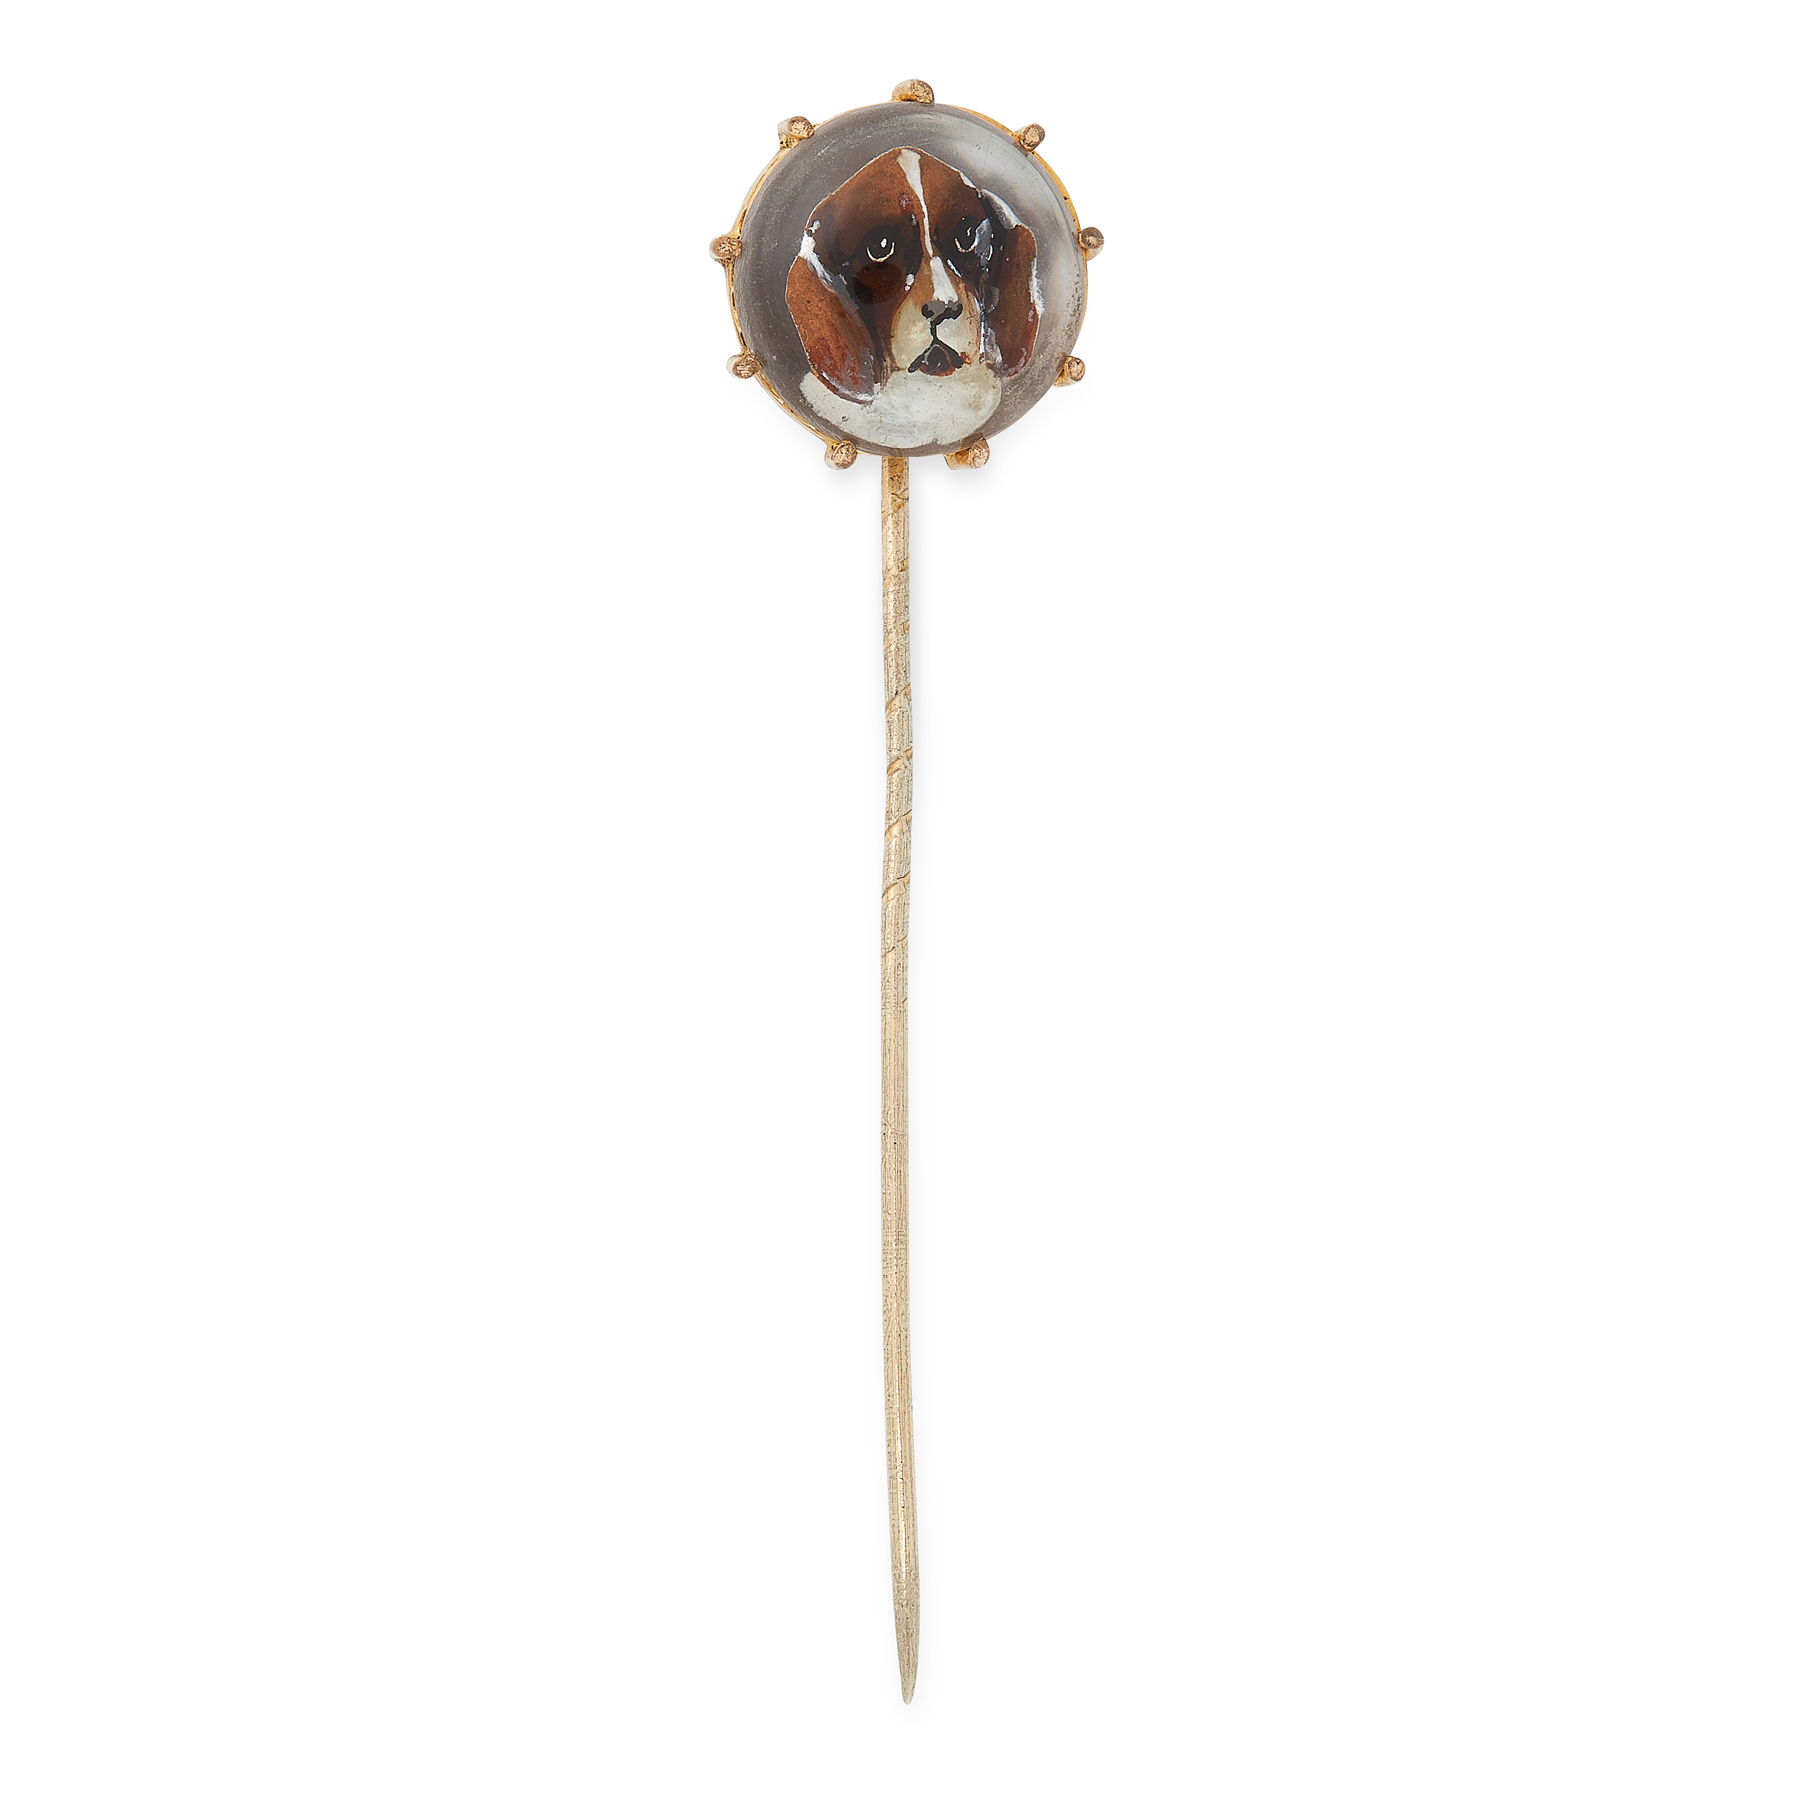 AN ANTIQUE ESSEX CRYSTAL DOG TIE PIN in yellow gold, set with a circular reverse carved cameo